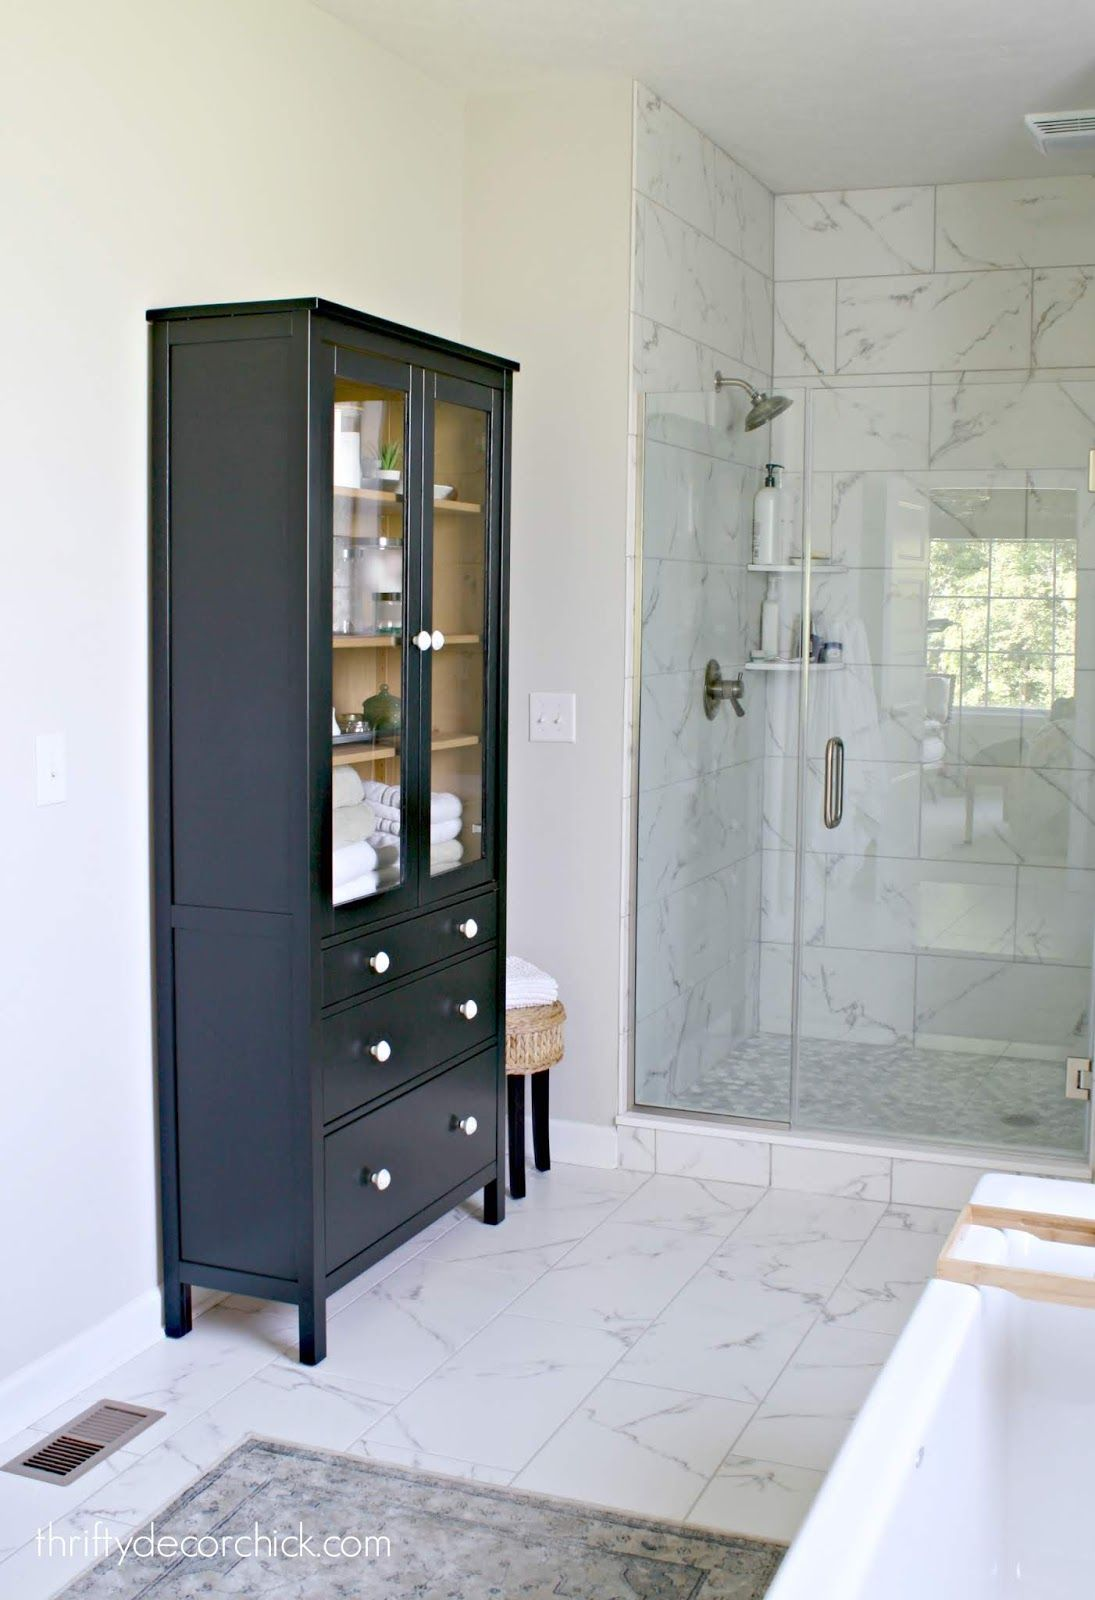 Two Toned Furniture Makeover For The Bathroom Ikea Furniture Makeover Furniture Makeover Ikea Furniture [ 1600 x 1095 Pixel ]